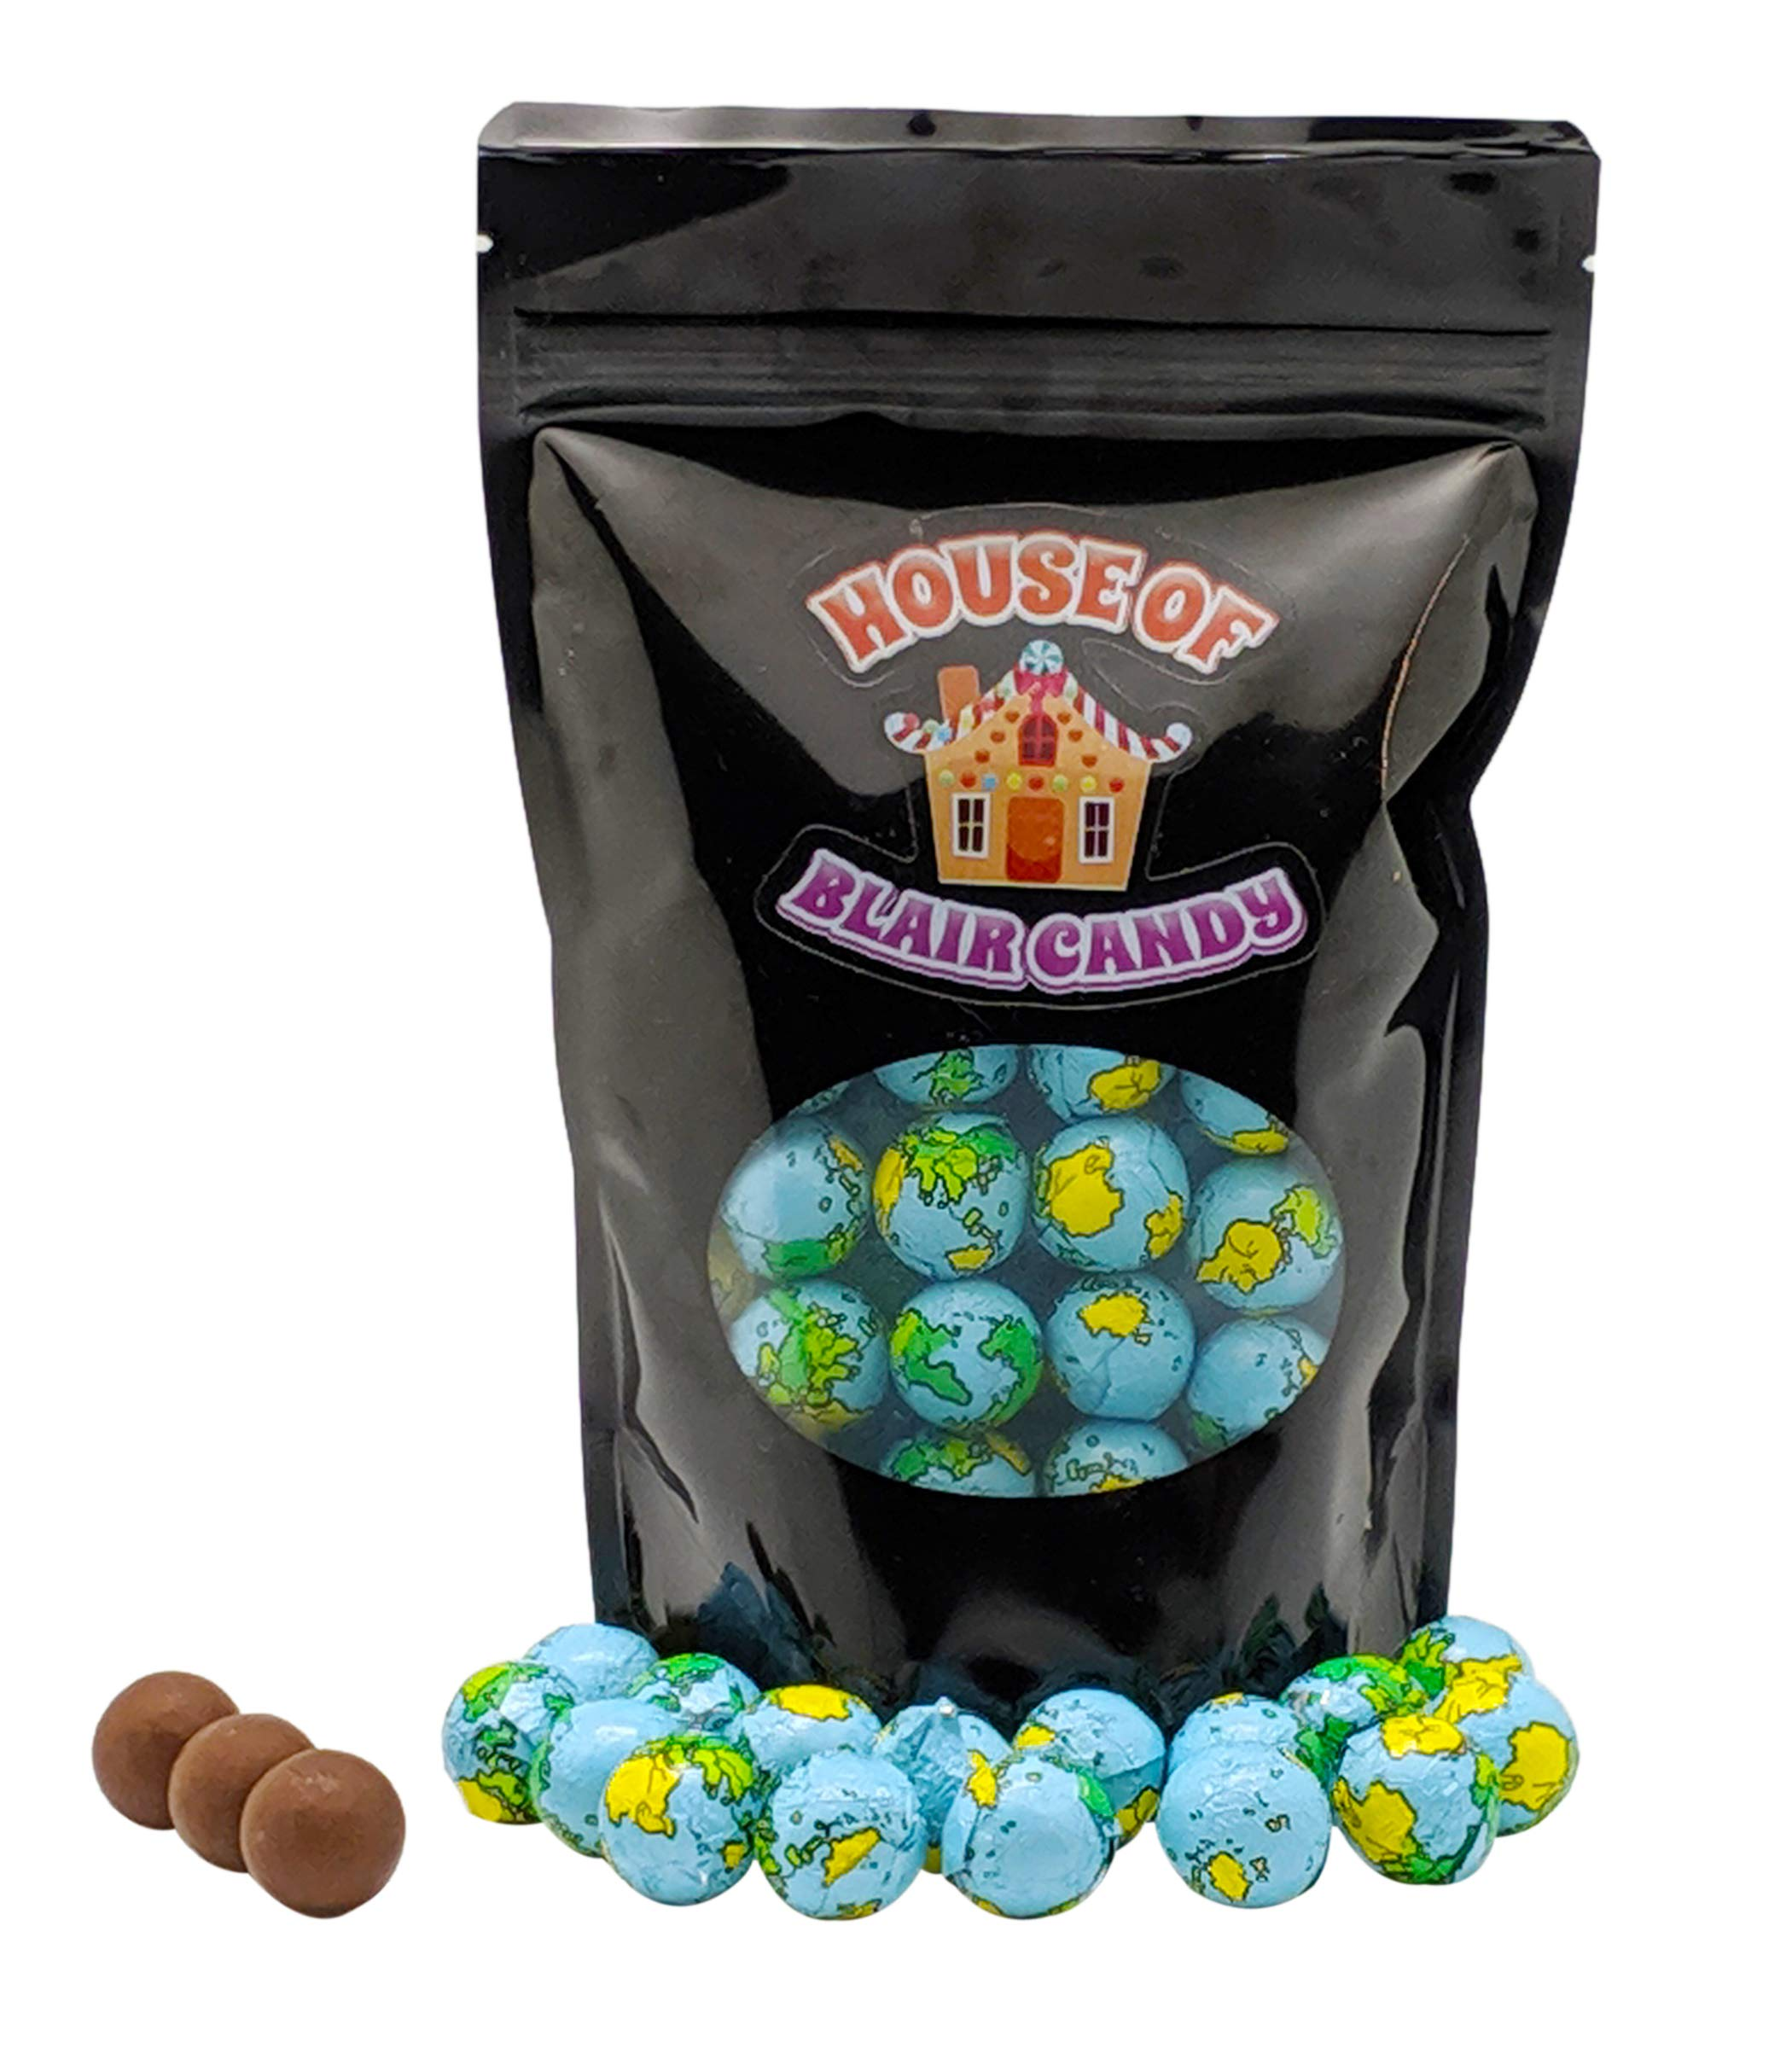 Chocolate Earth Balls - 1 LB (approximately 75-80 Pieces Per Pound) - Individually Wrapped - Sealed in Resealable Candy Bag - Decorative Bulk Filler Chocolate Candies by Blair Candy